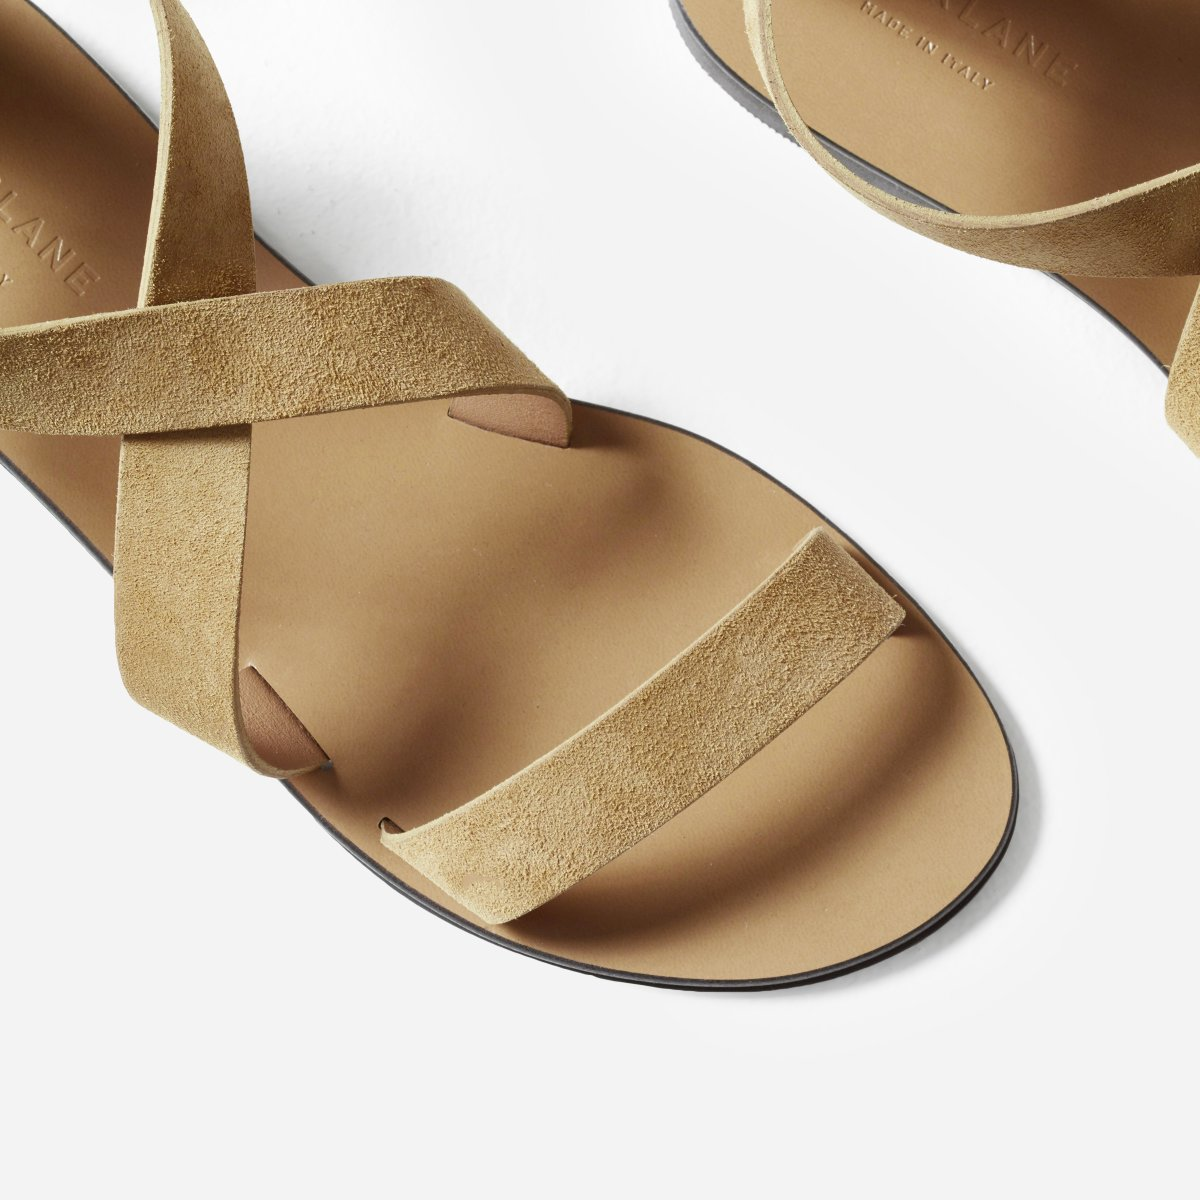 Everlane Recycled Shoes